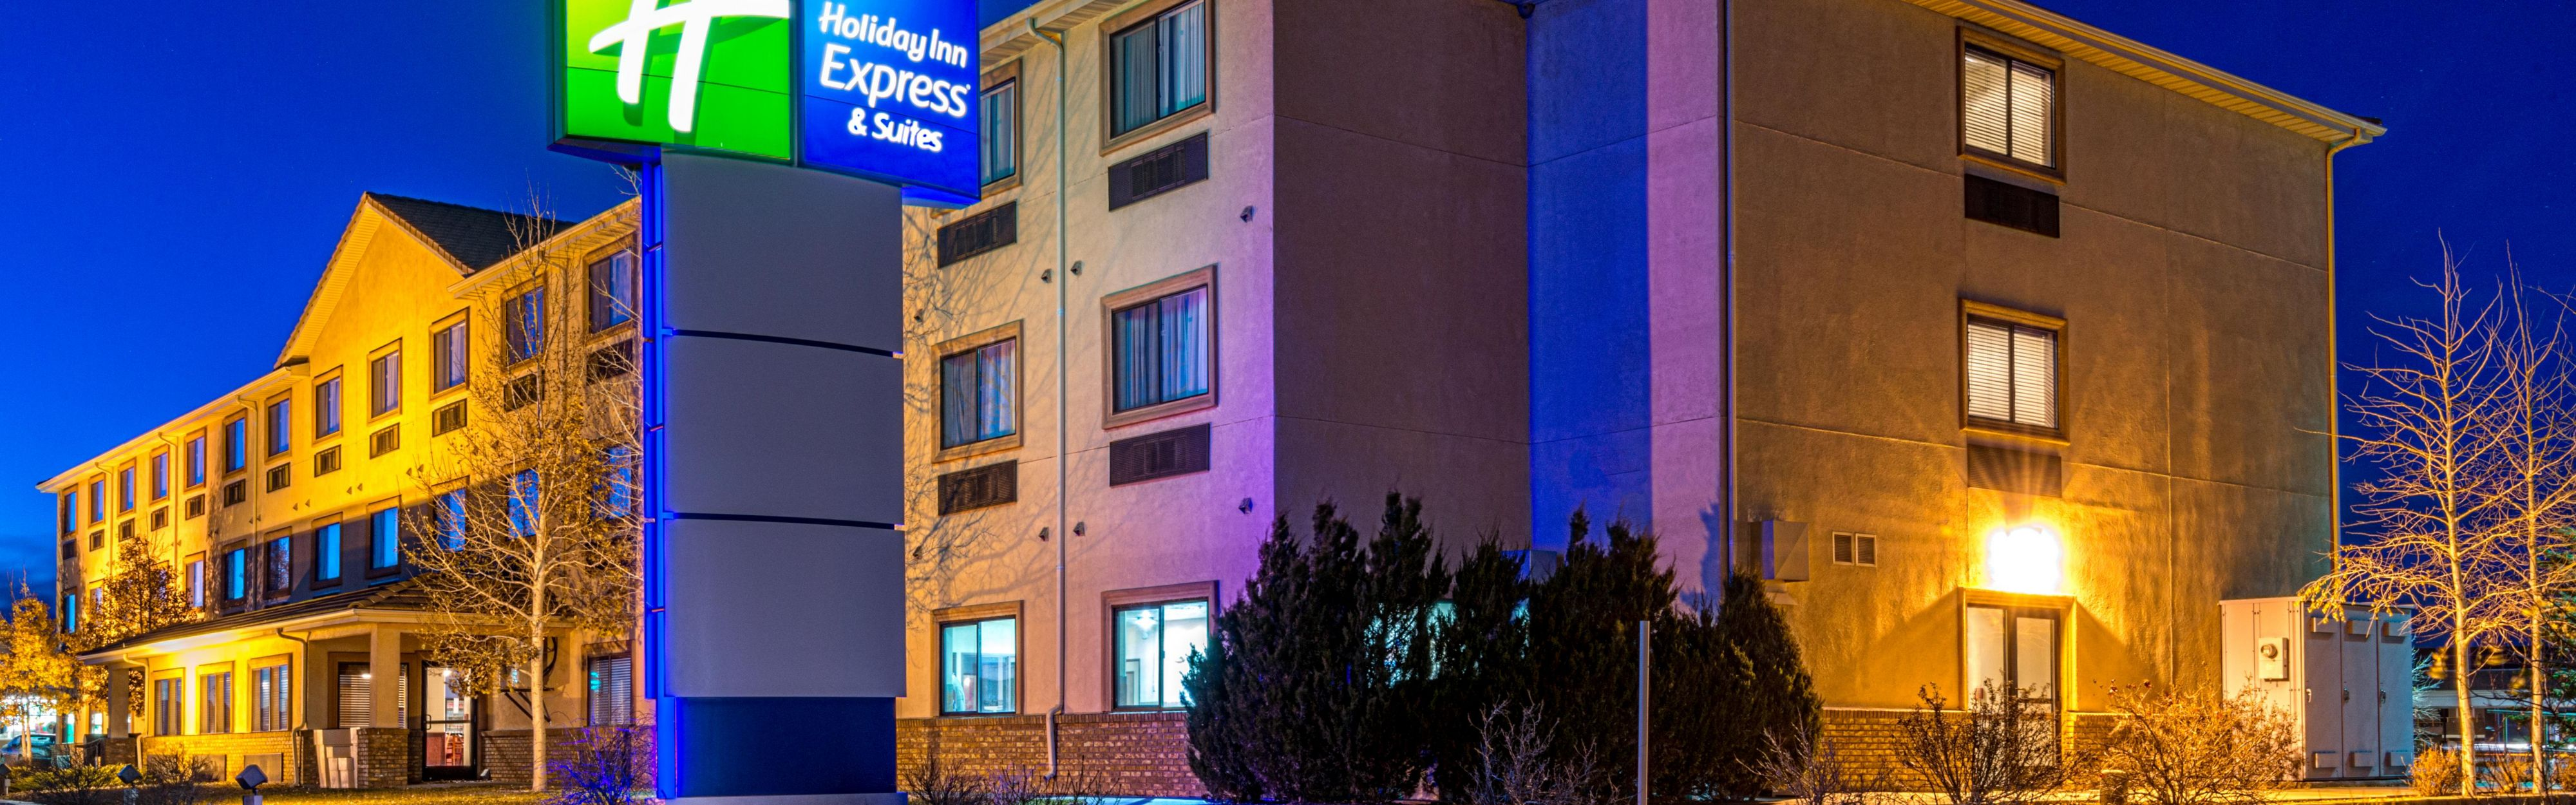 Holiday Inn Express & Suites Alamosa image 0